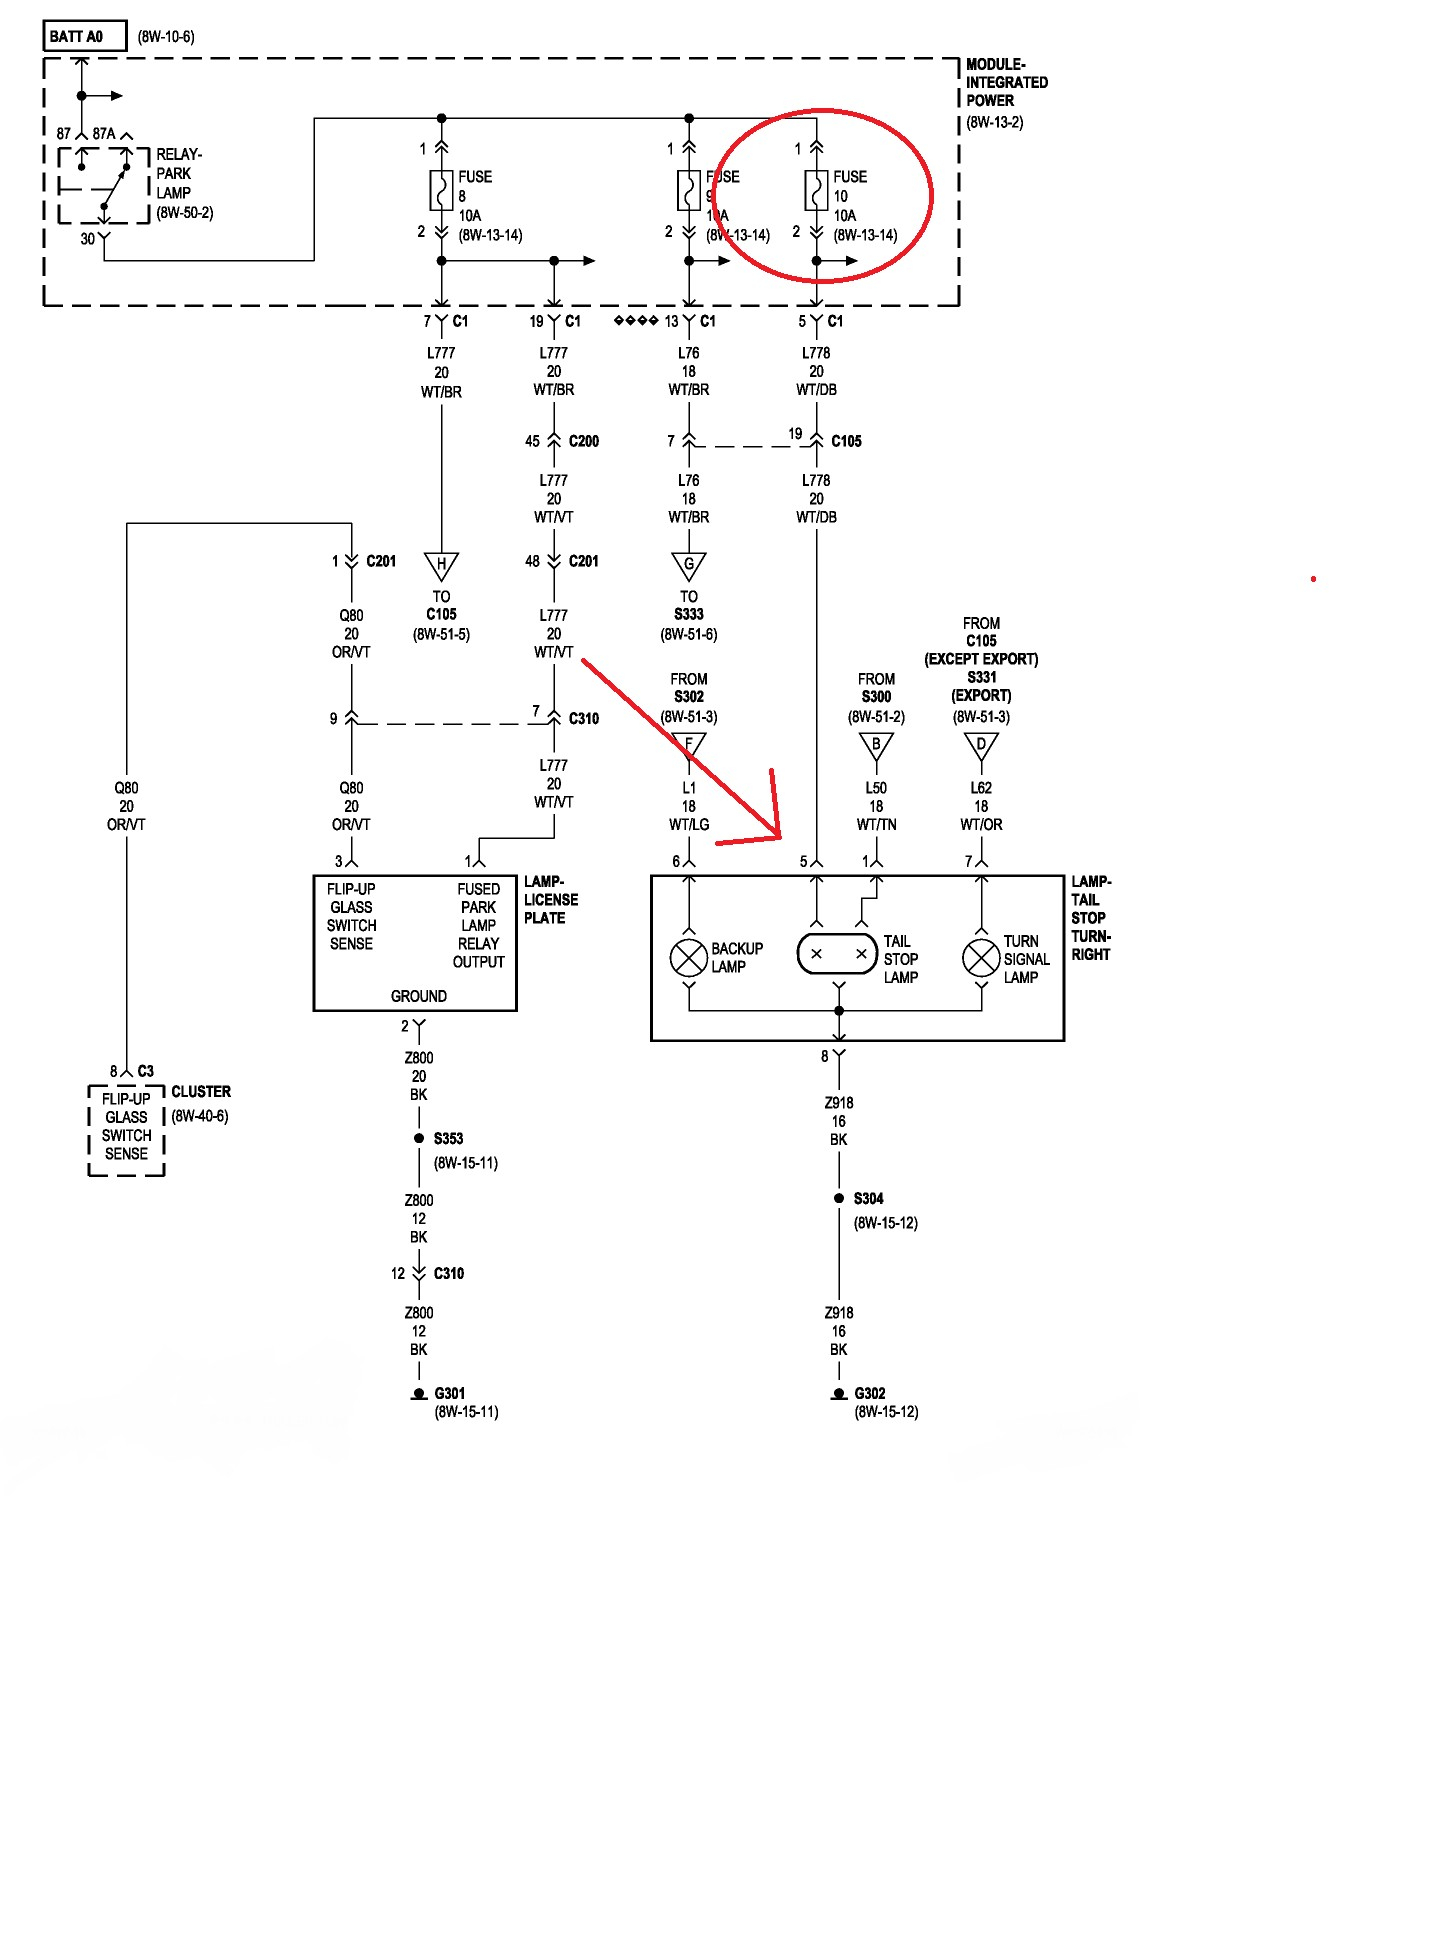 jeep grand cherokee wiring diagram Download-Jeep Grand Cherokee Ignition Wiring Diagram Valid 2006 Jeep Grand Cherokee Wiring Diagram 19-g